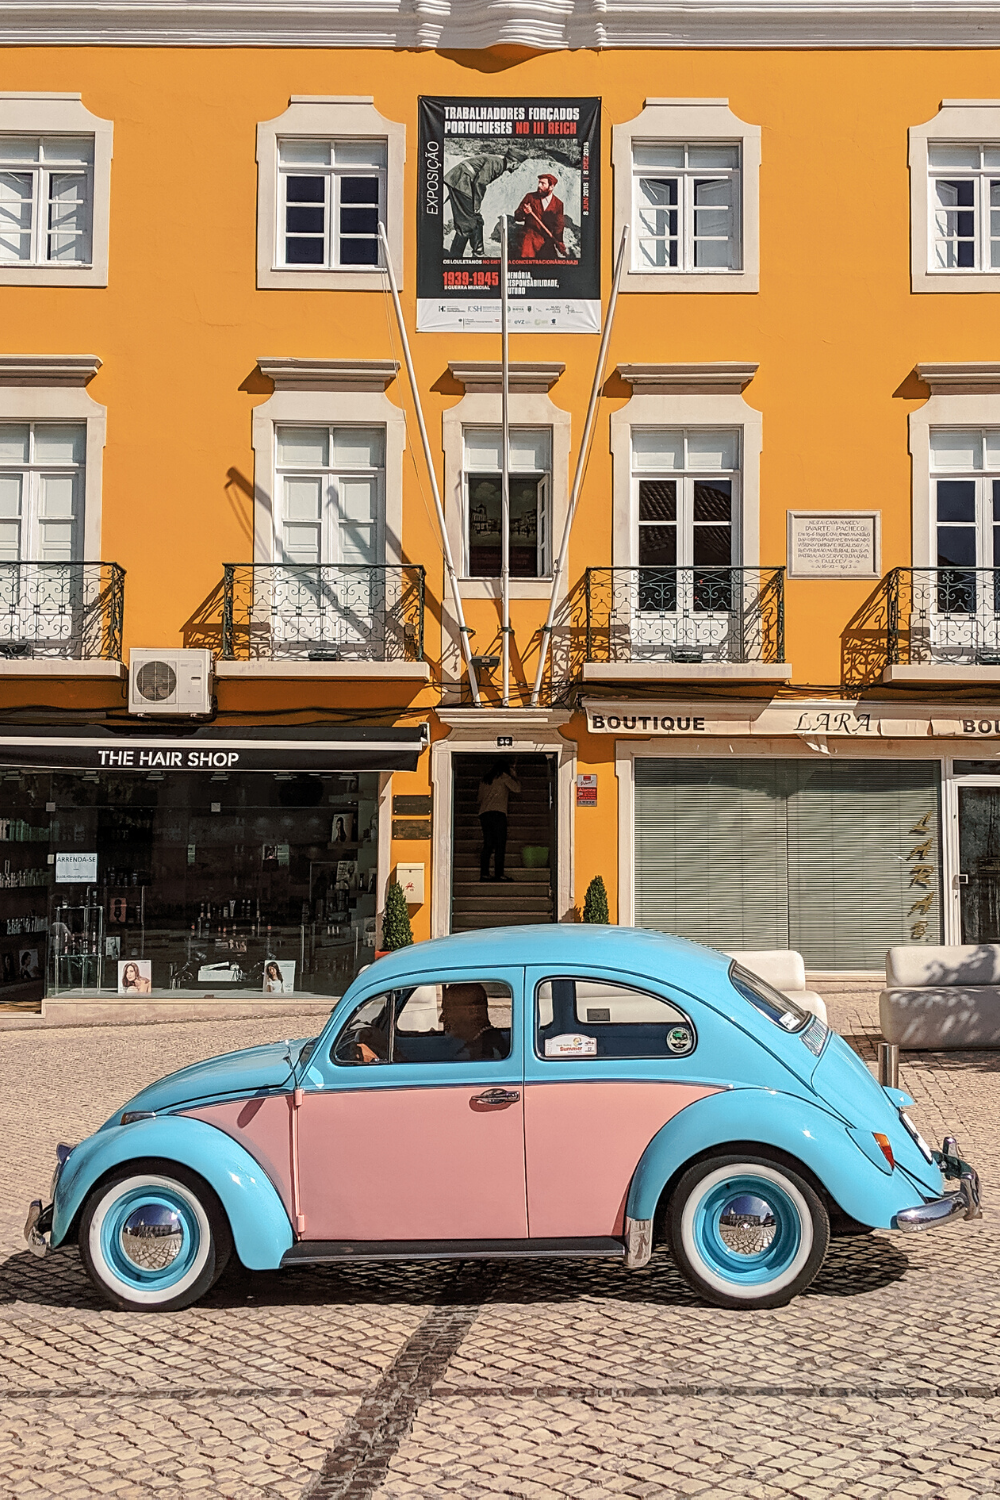 A Day In Loulé Portugal: What To See, Do and Eat!